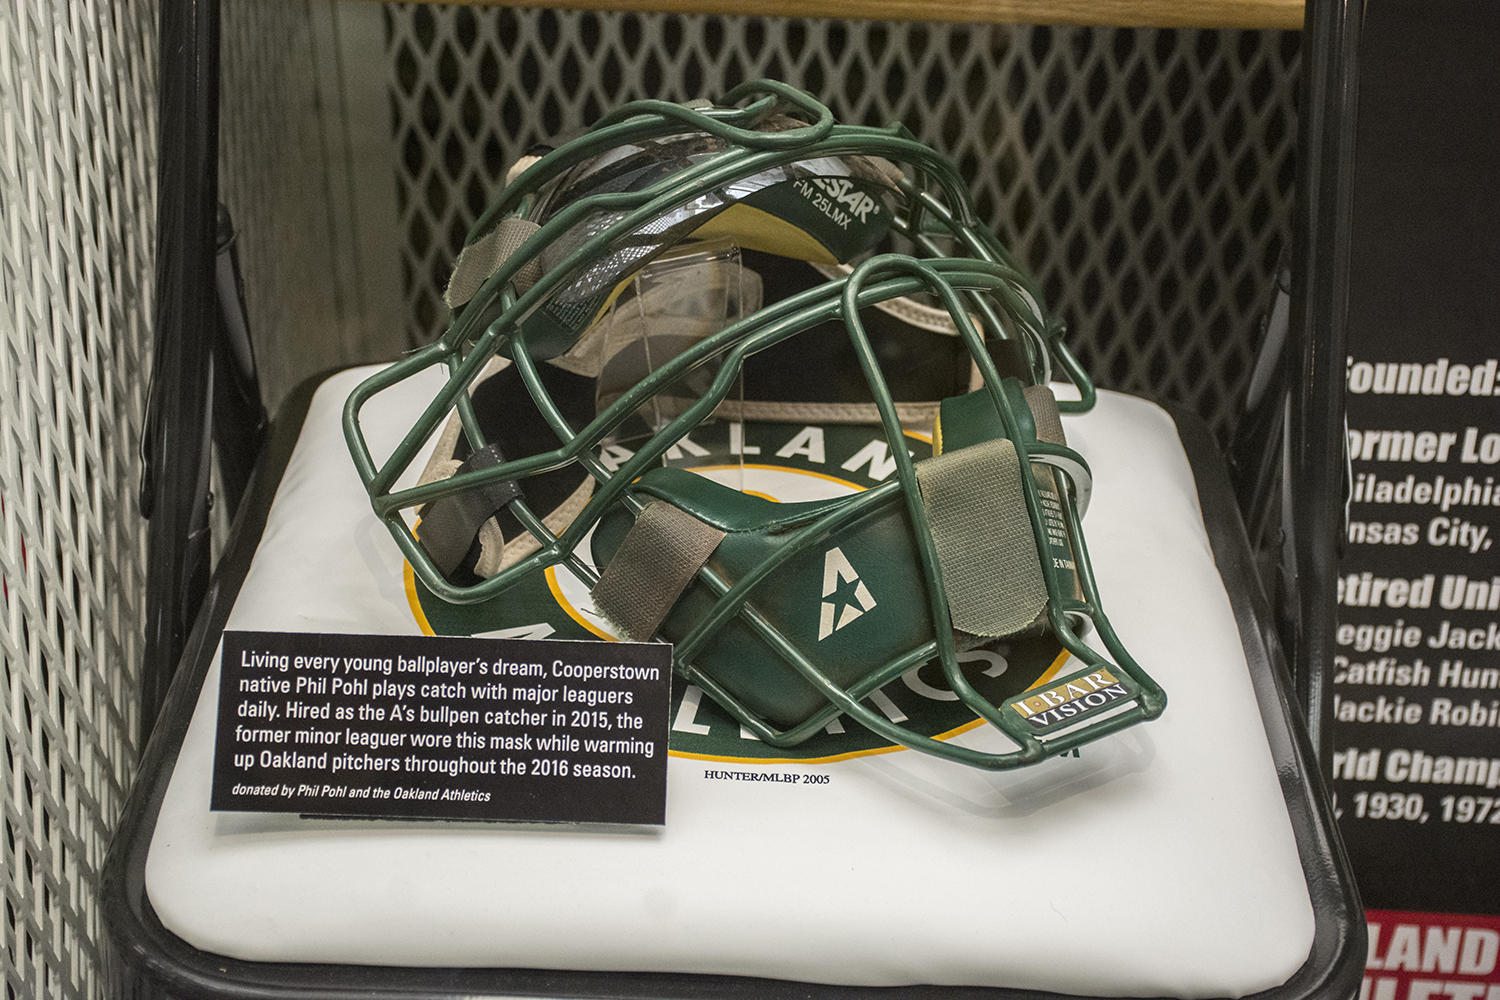 Phil Pohl's catcher's mask is now on display in the A's locker on the second floor of the Museum. (Milo Stewart Jr. / National Baseball Hall of Fame)